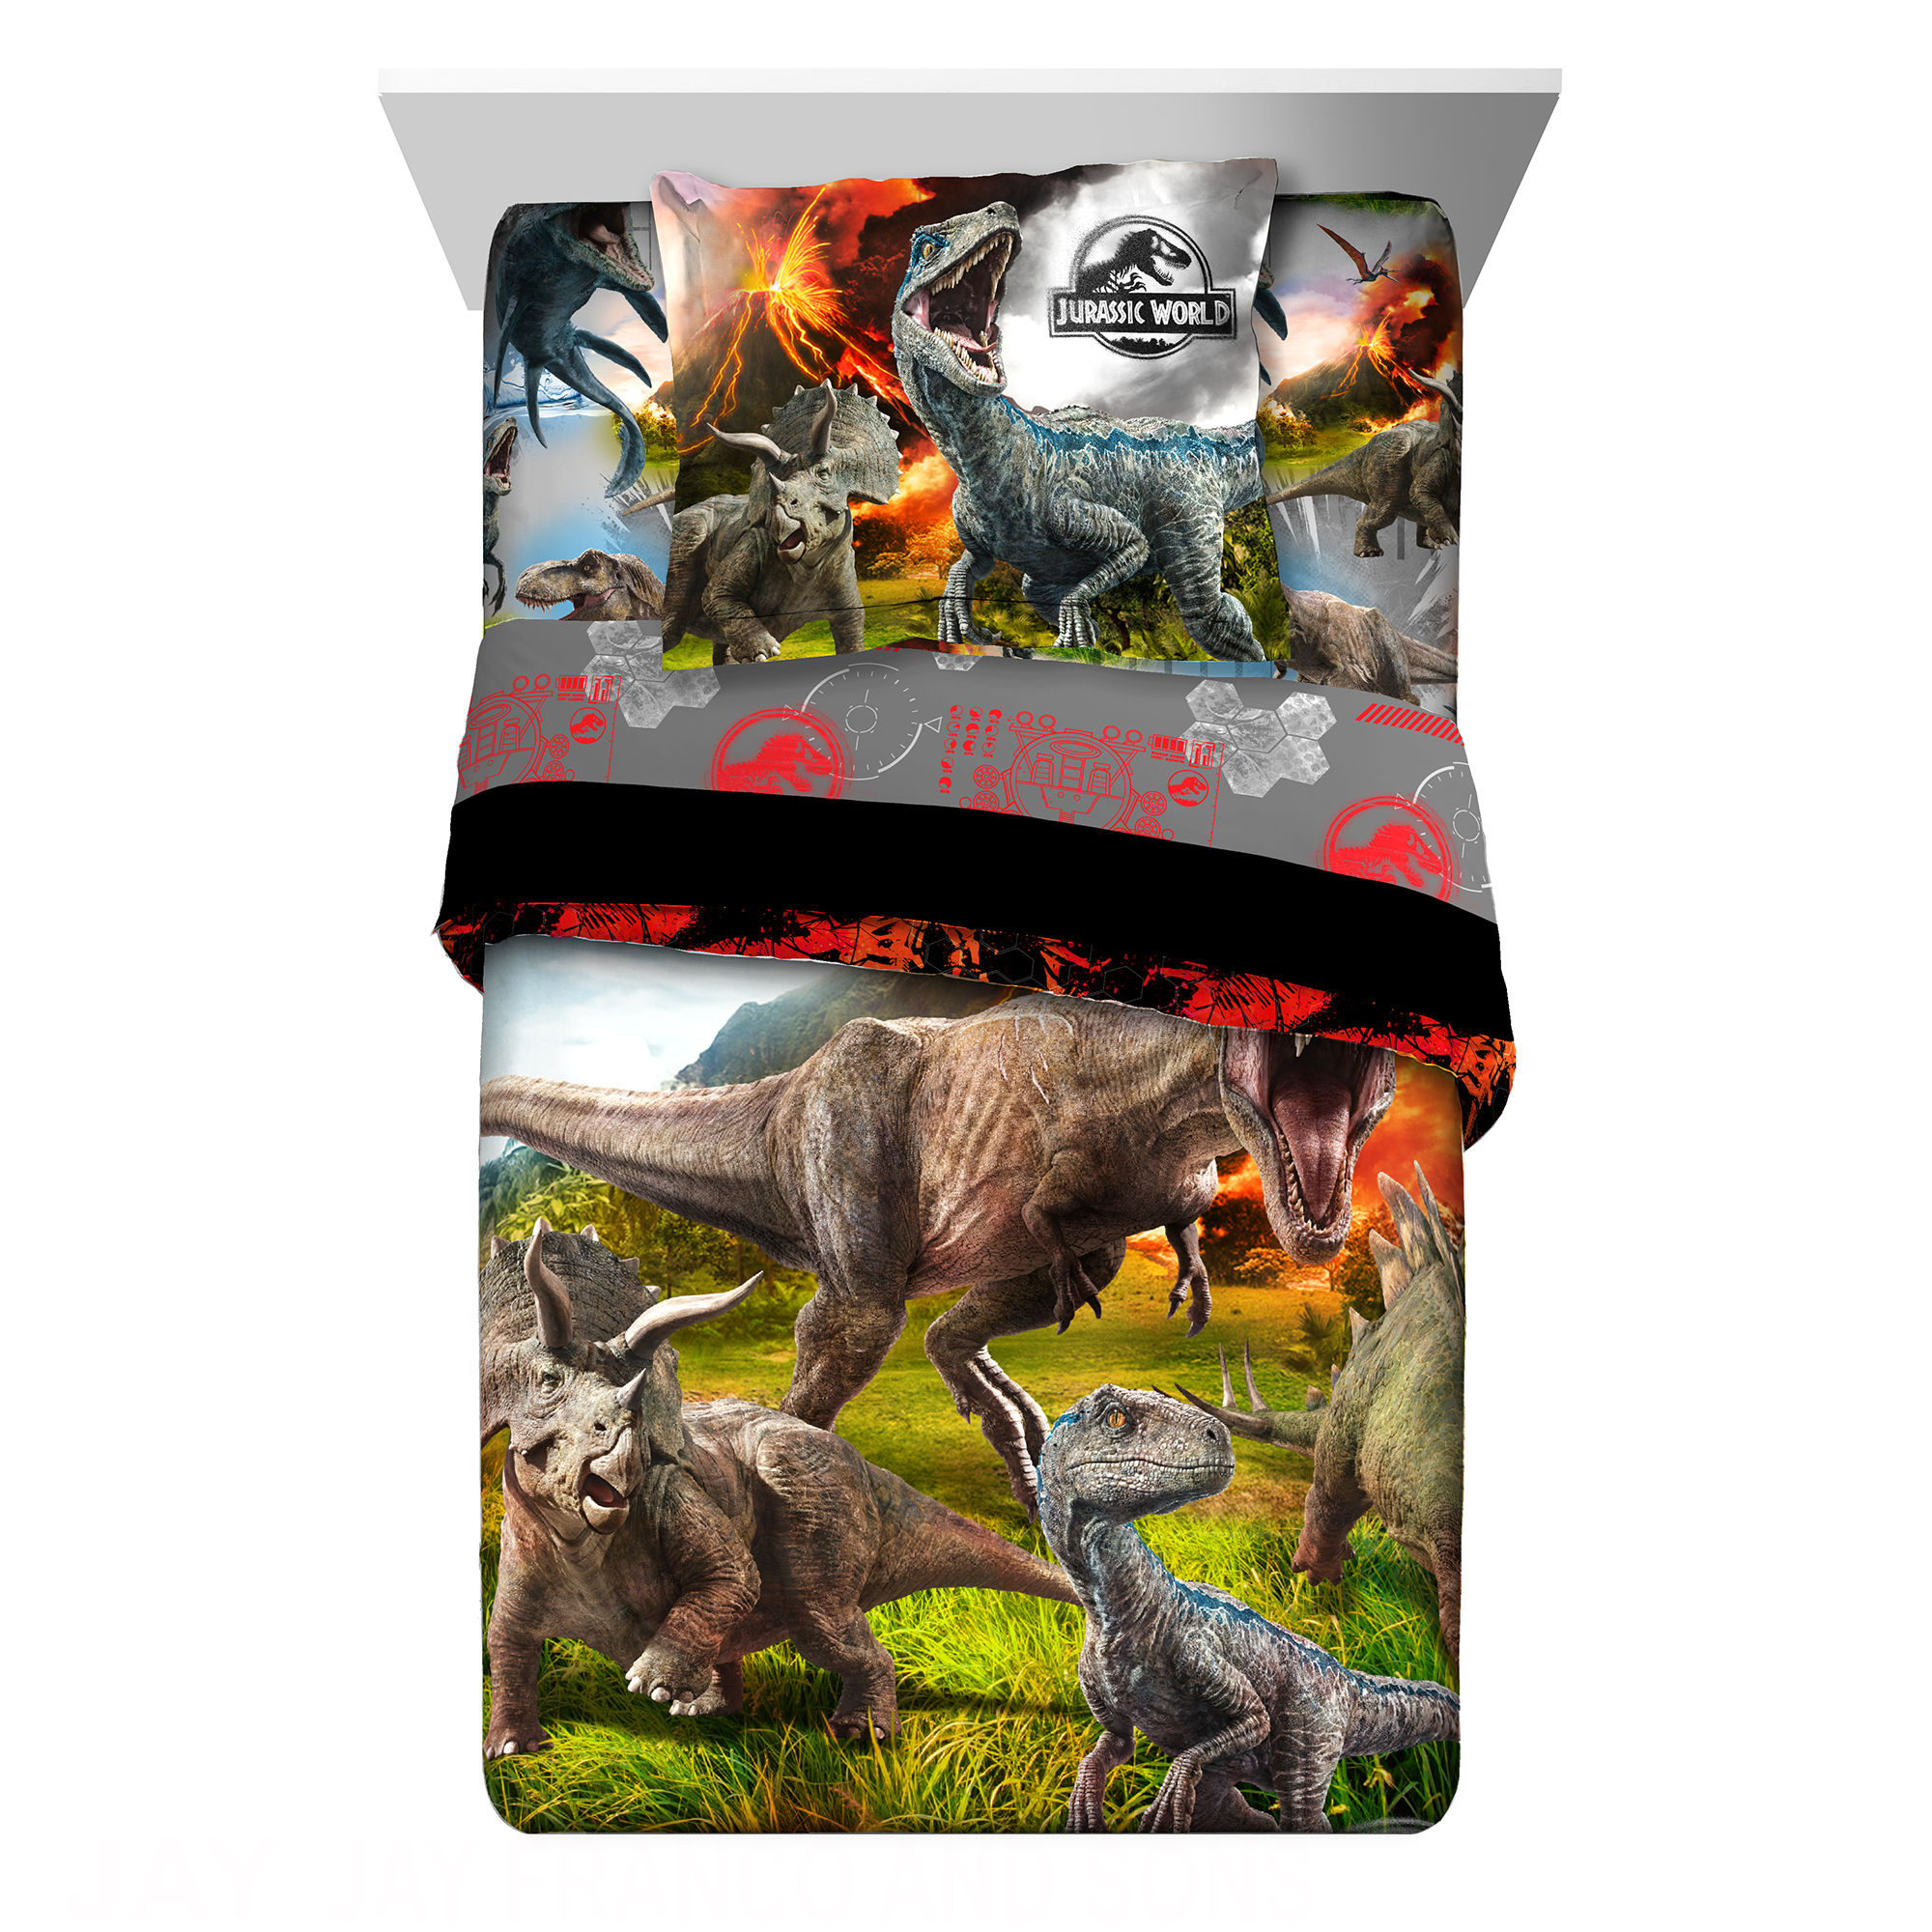 Universal Jurassic World 2 'Eruption' 2pc Kids Bedding Twin/Full Comforter with Sham